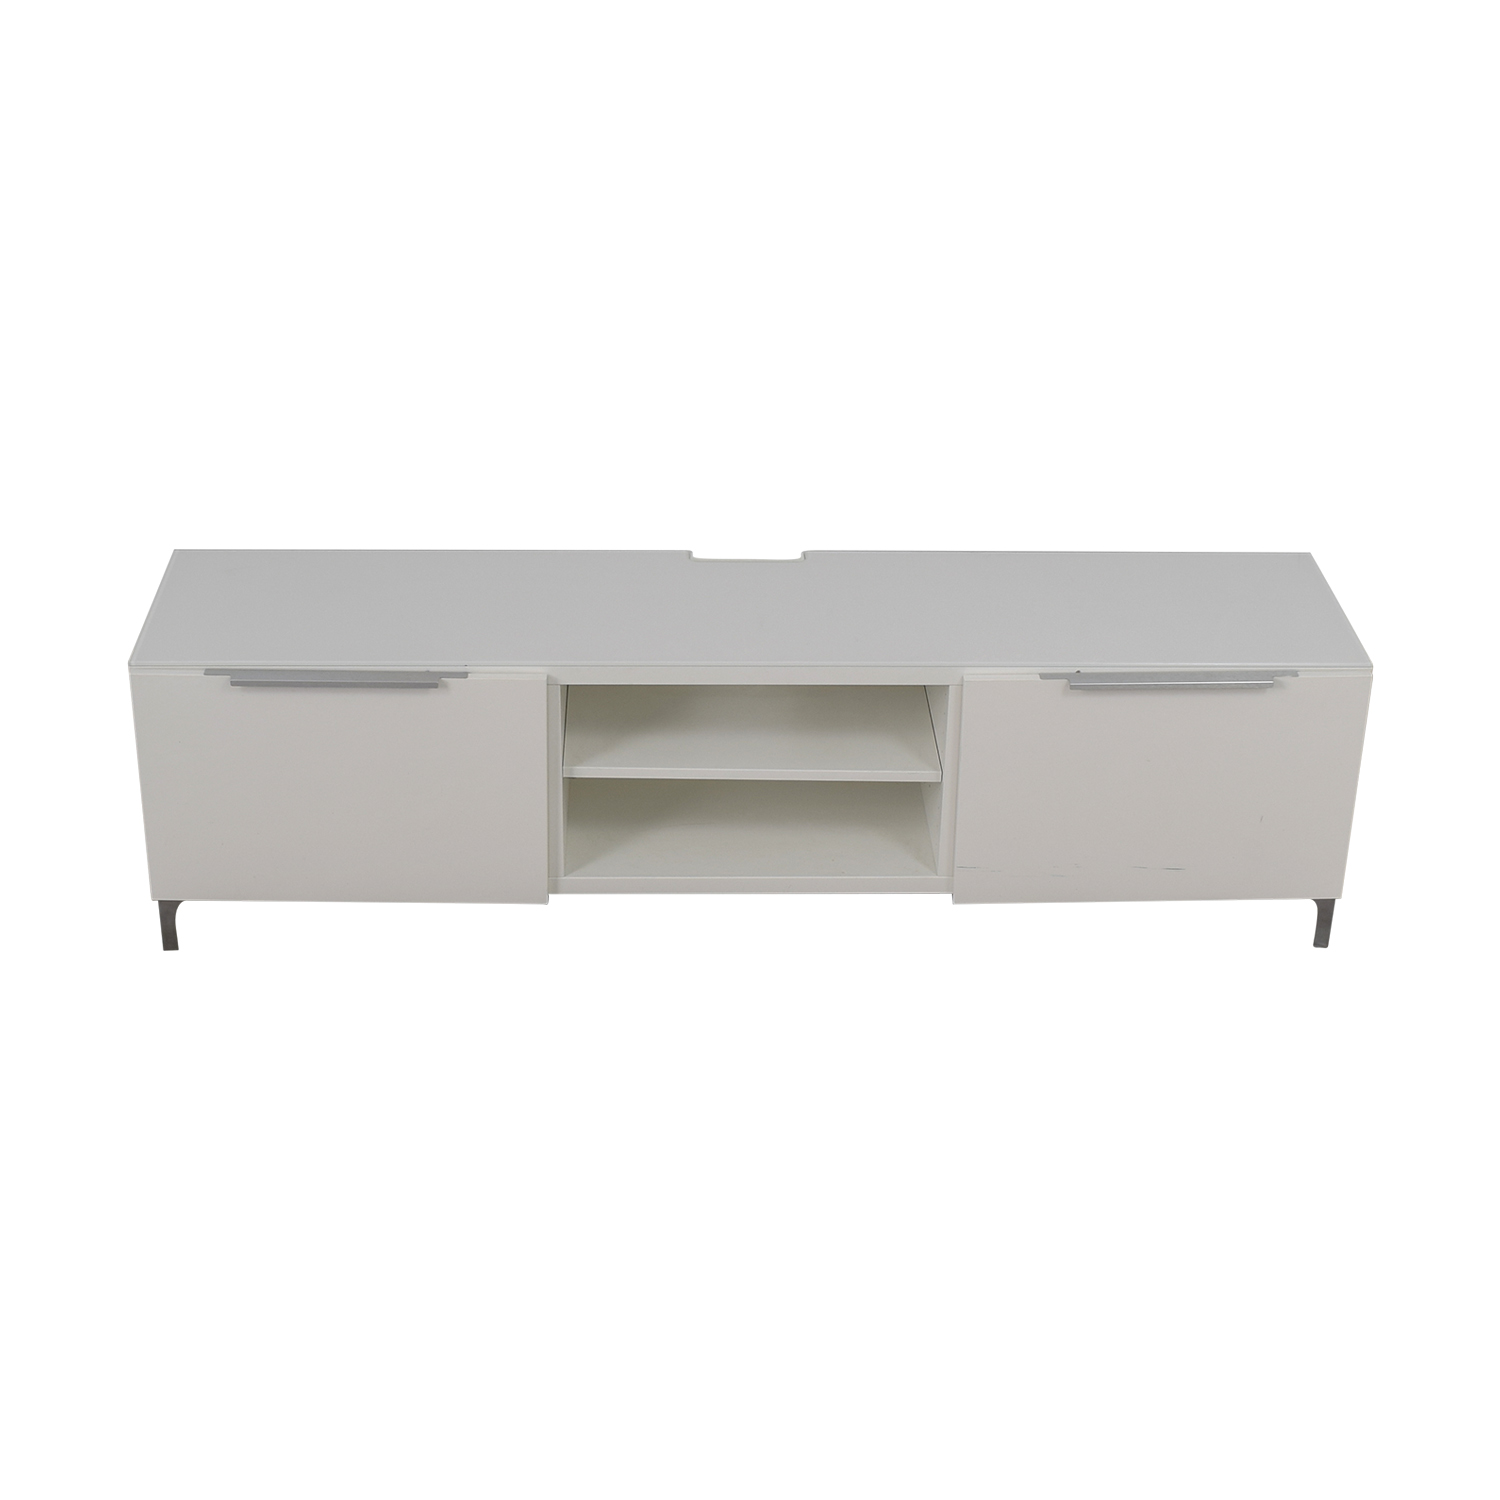 IKEA IKEA White Media Console used